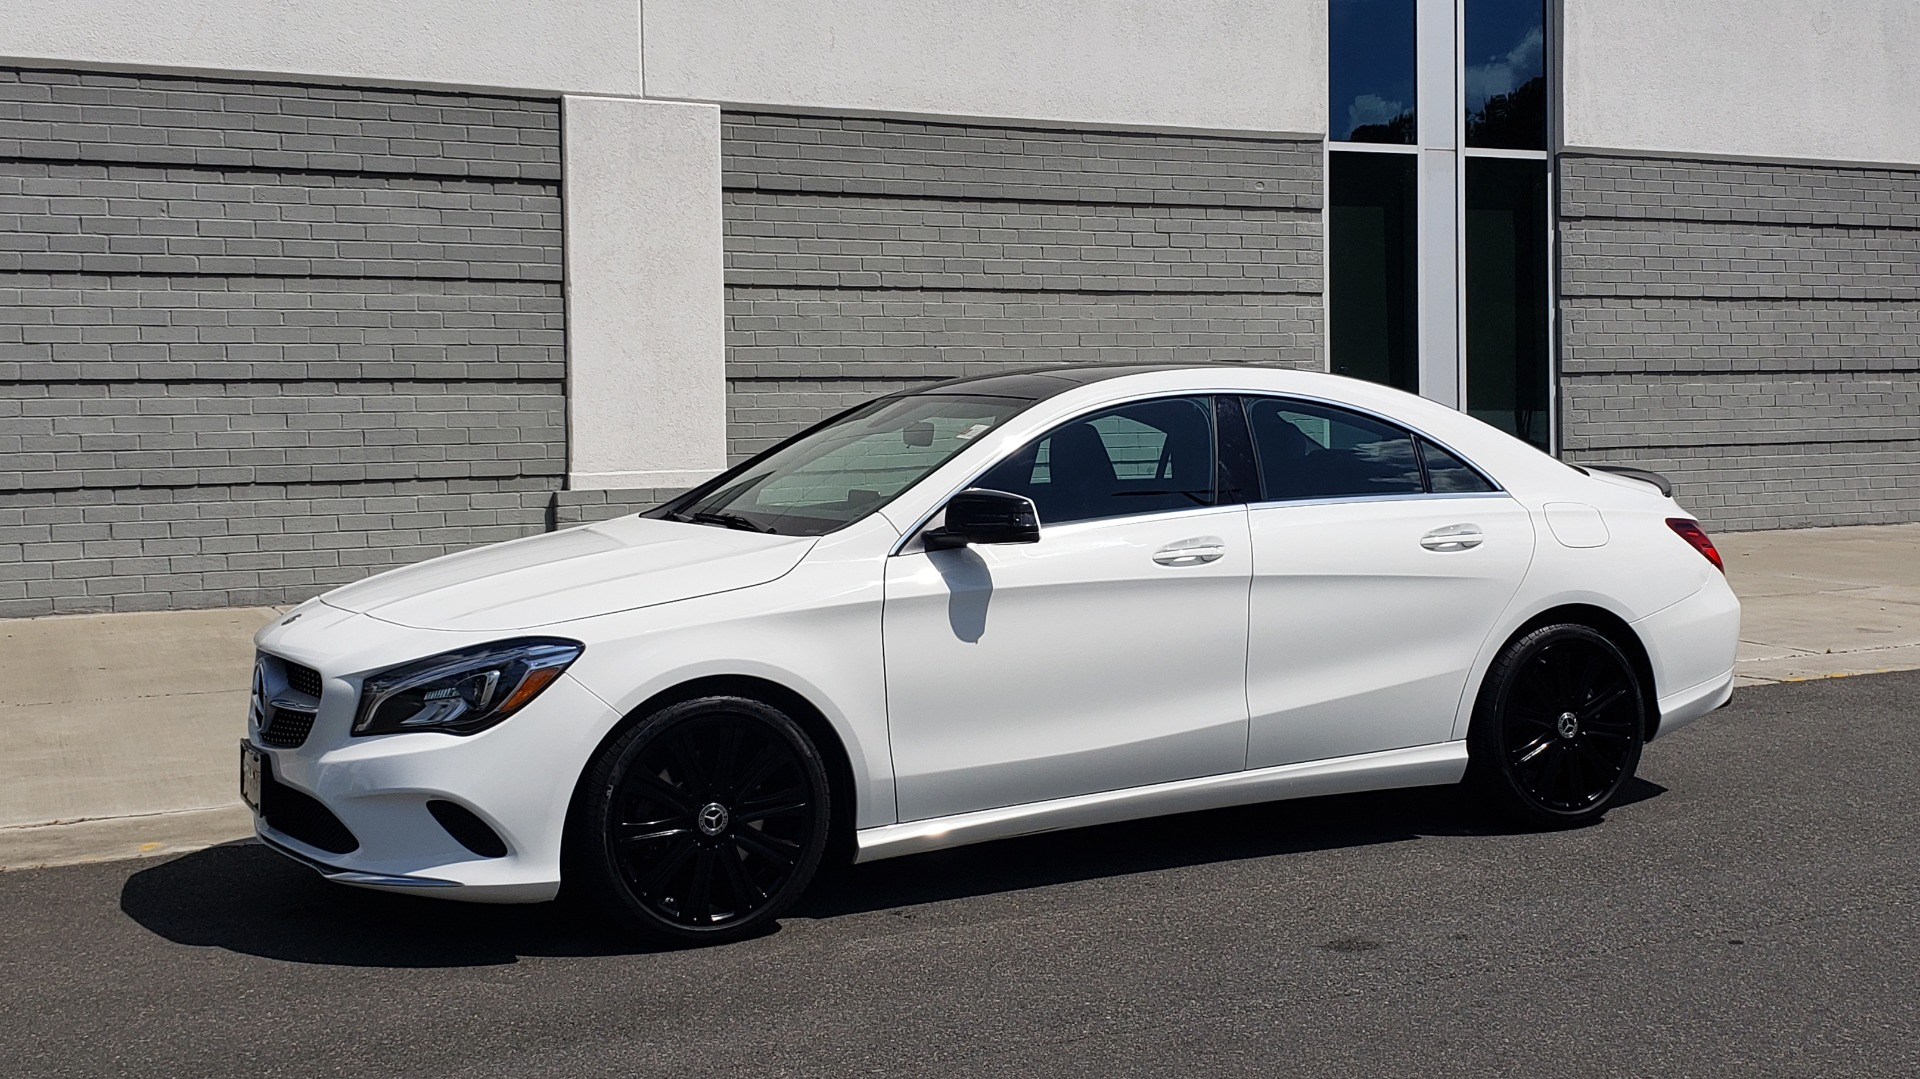 Used 2018 Mercedes-Benz CLA 250 4MATIC COUPE / PREMIUM / PANO-ROOF / APPLE / REARVIEW for sale Sold at Formula Imports in Charlotte NC 28227 4